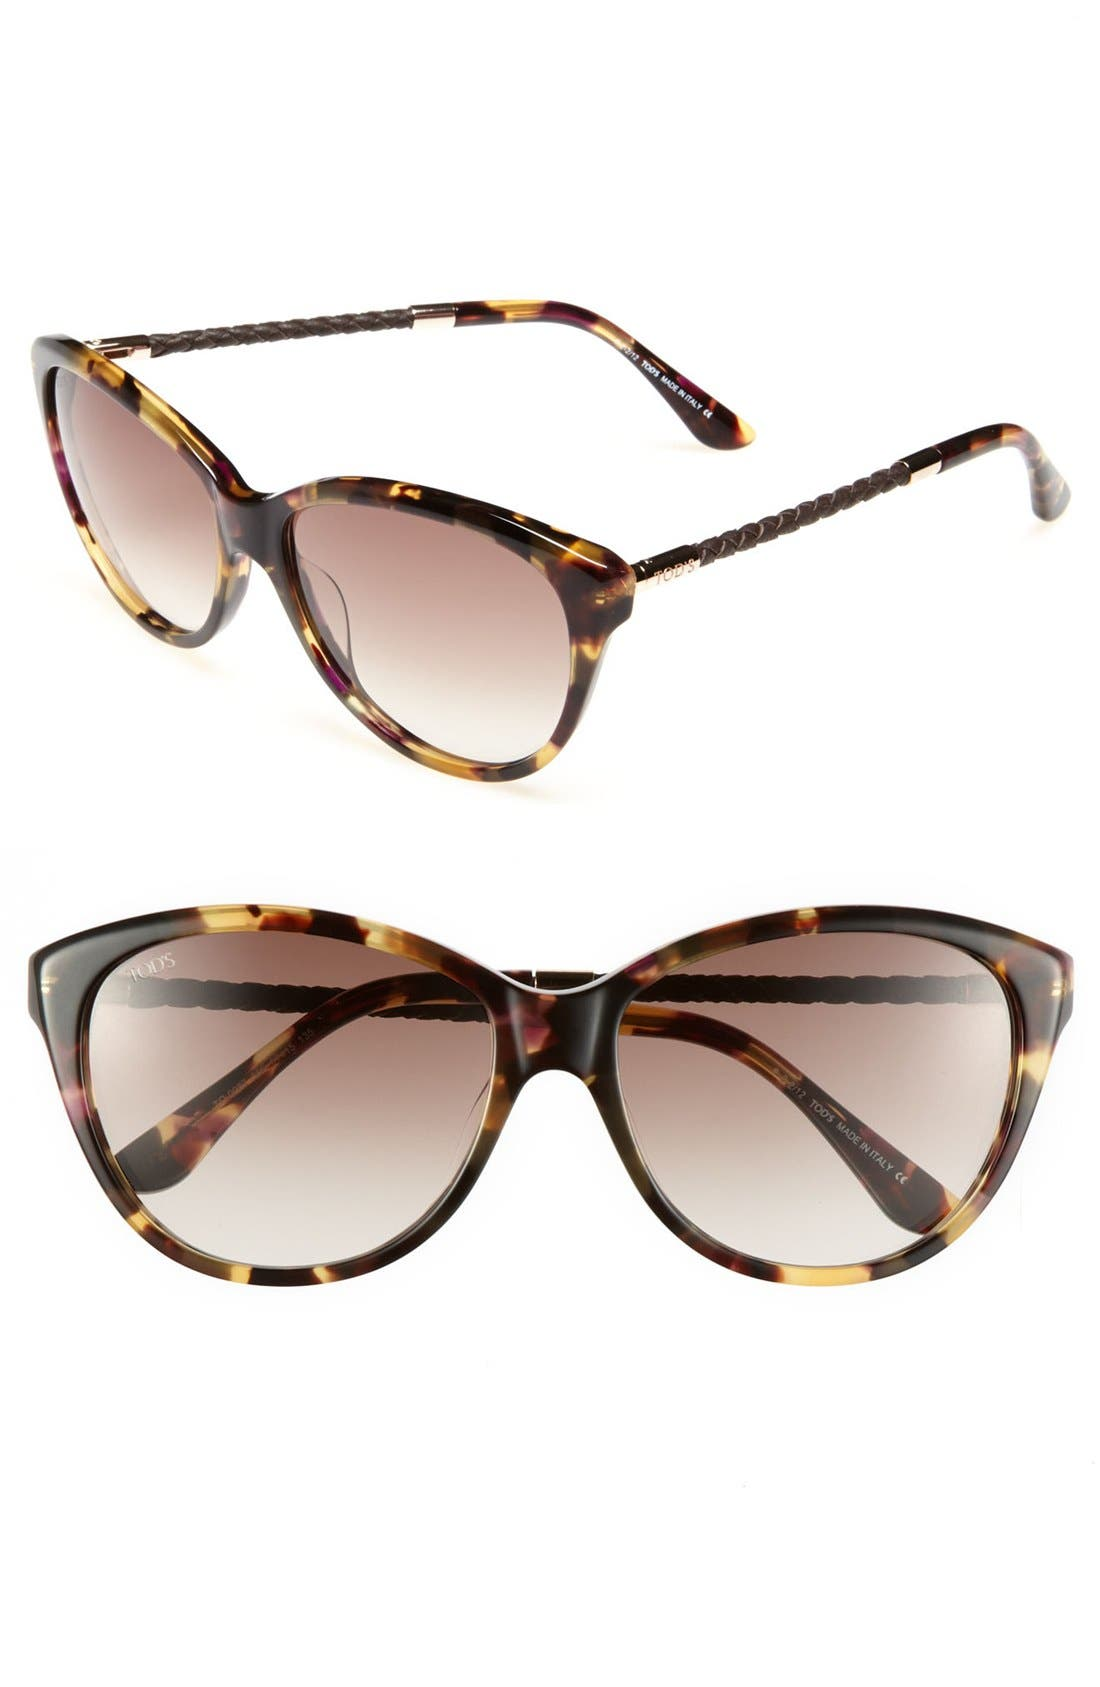 Main Image - Tod's 57mm Woven Leather Temple Cat Eye Sunglasses